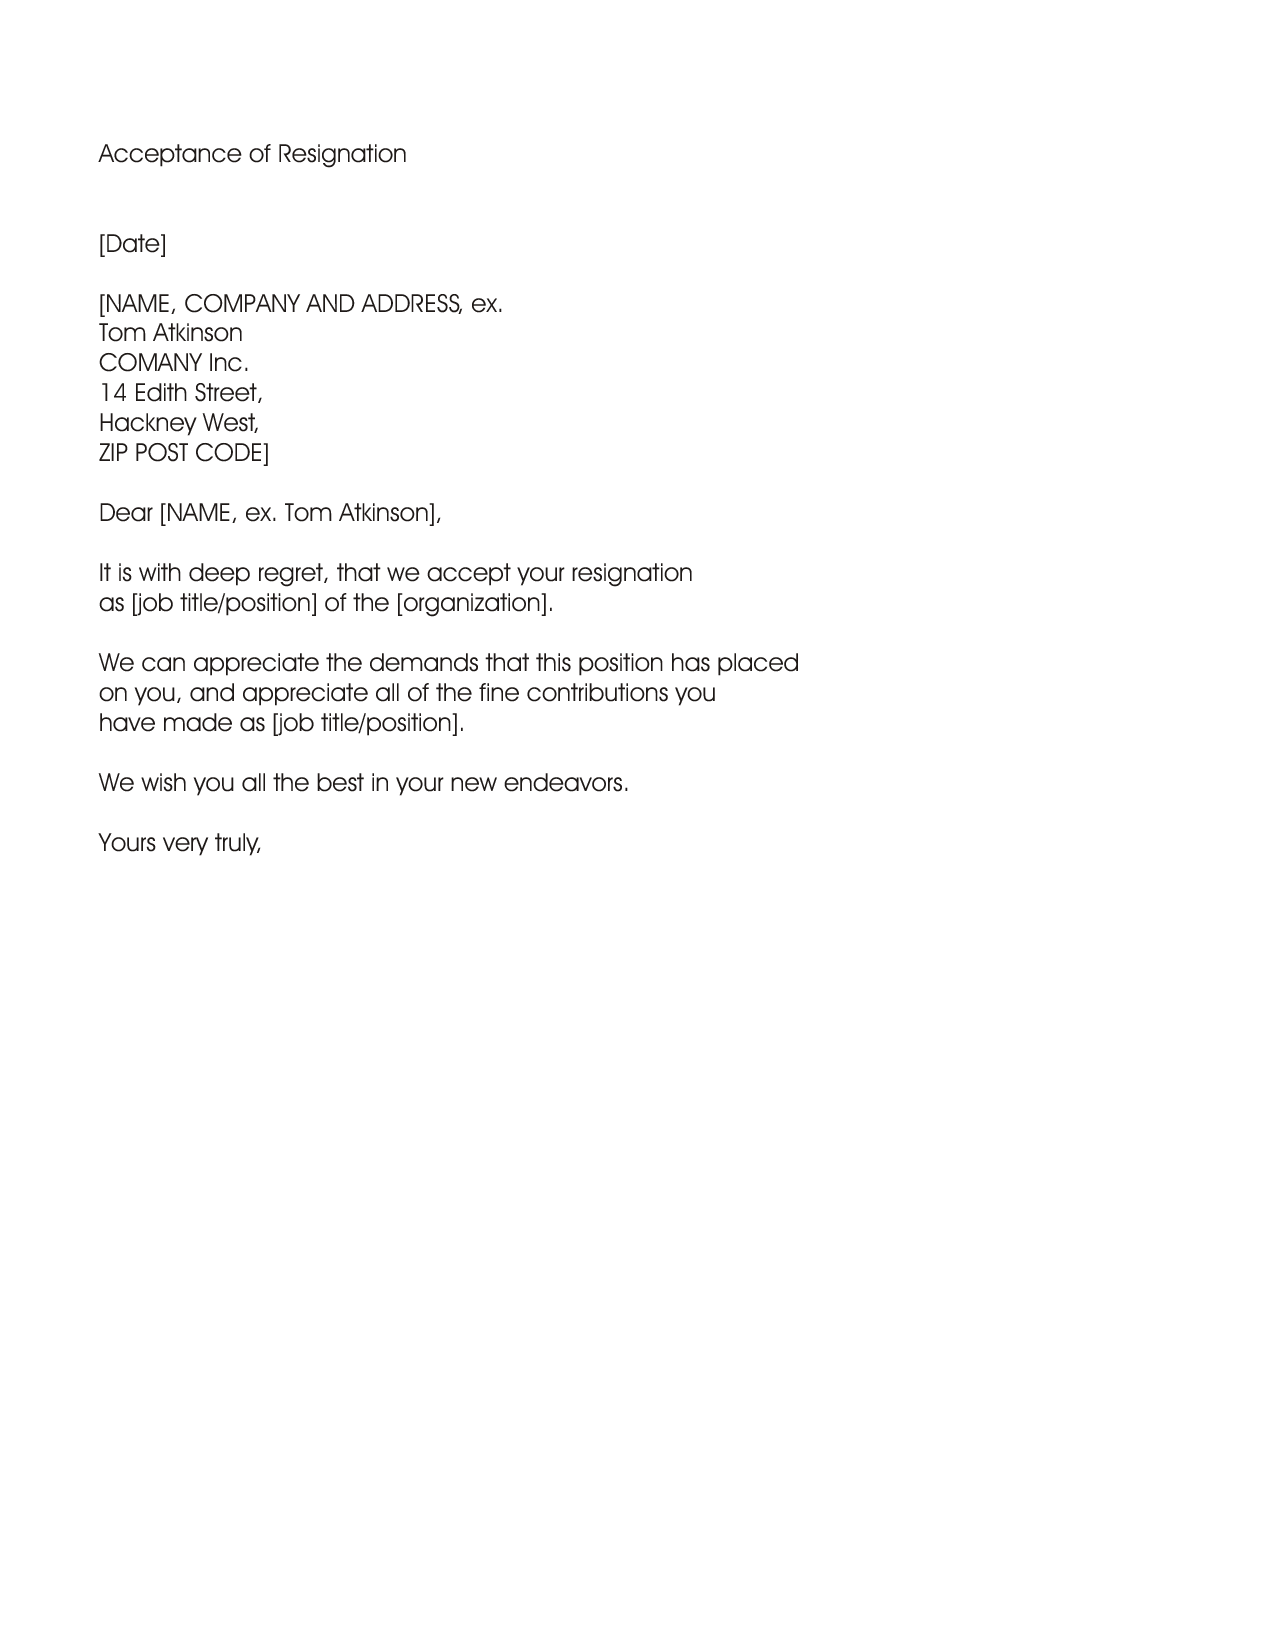 Resignation Acceptance Letter  Letter Example From Accepting An